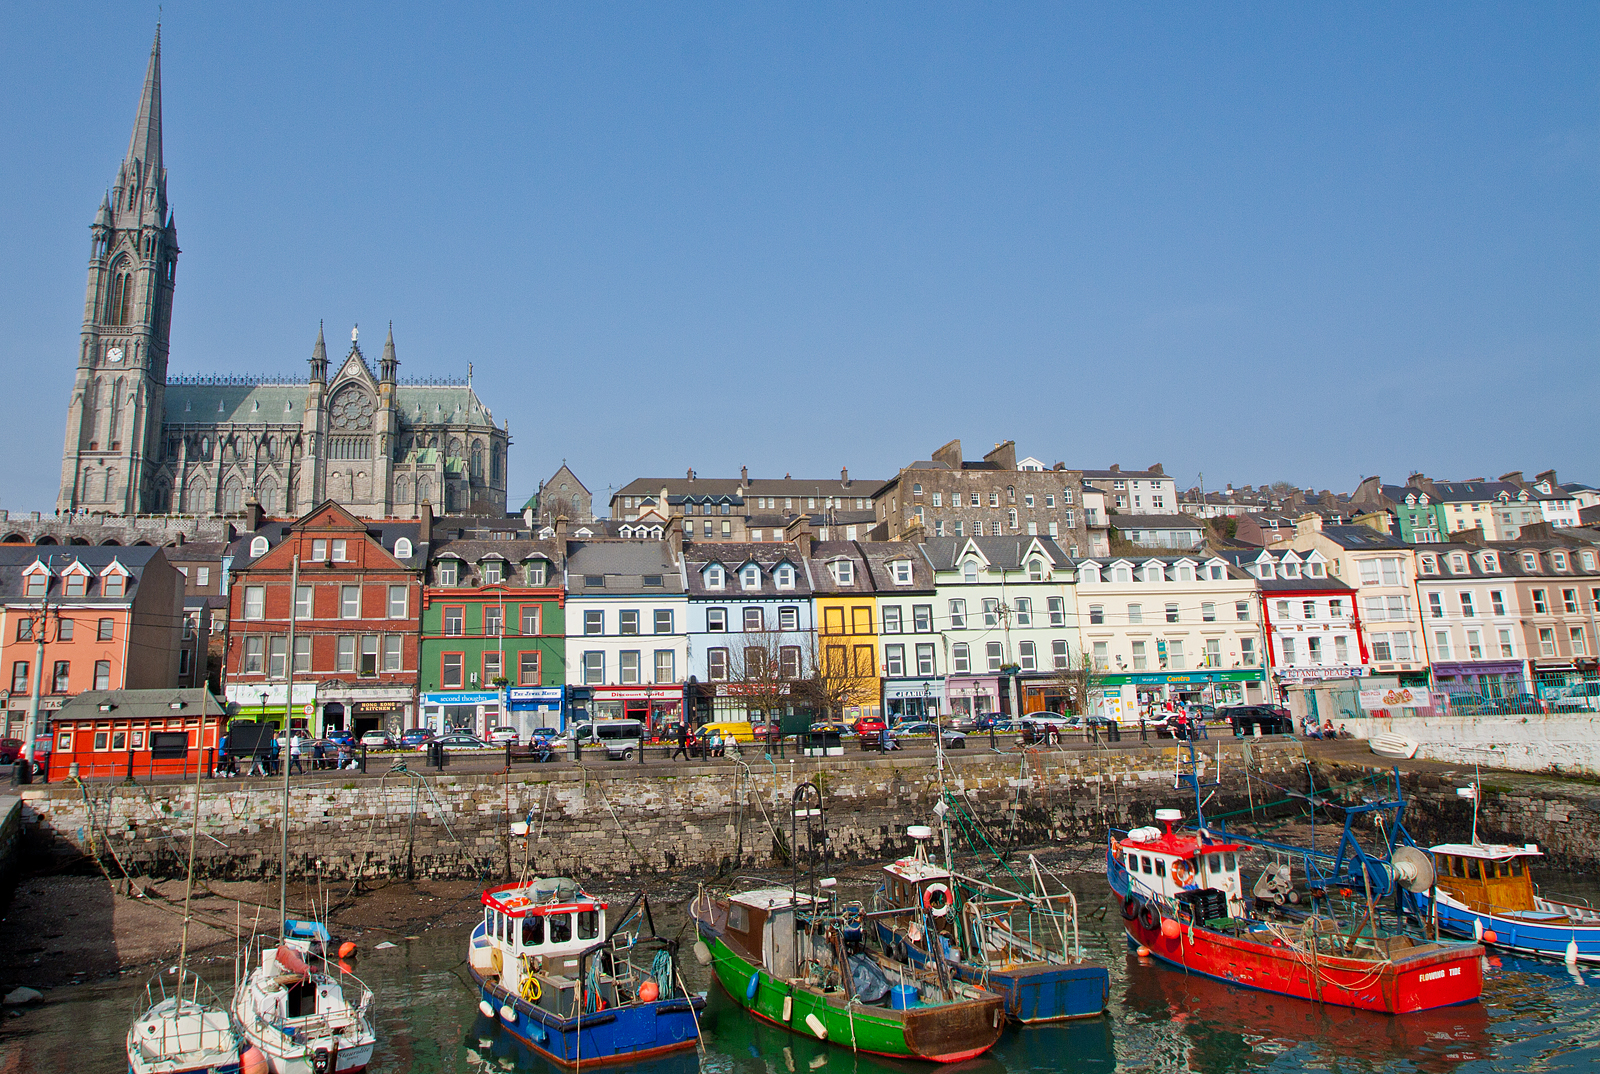 Cobh, Co. Cork, Ireland - Last place the Titanic stopped on its maiden voyage.